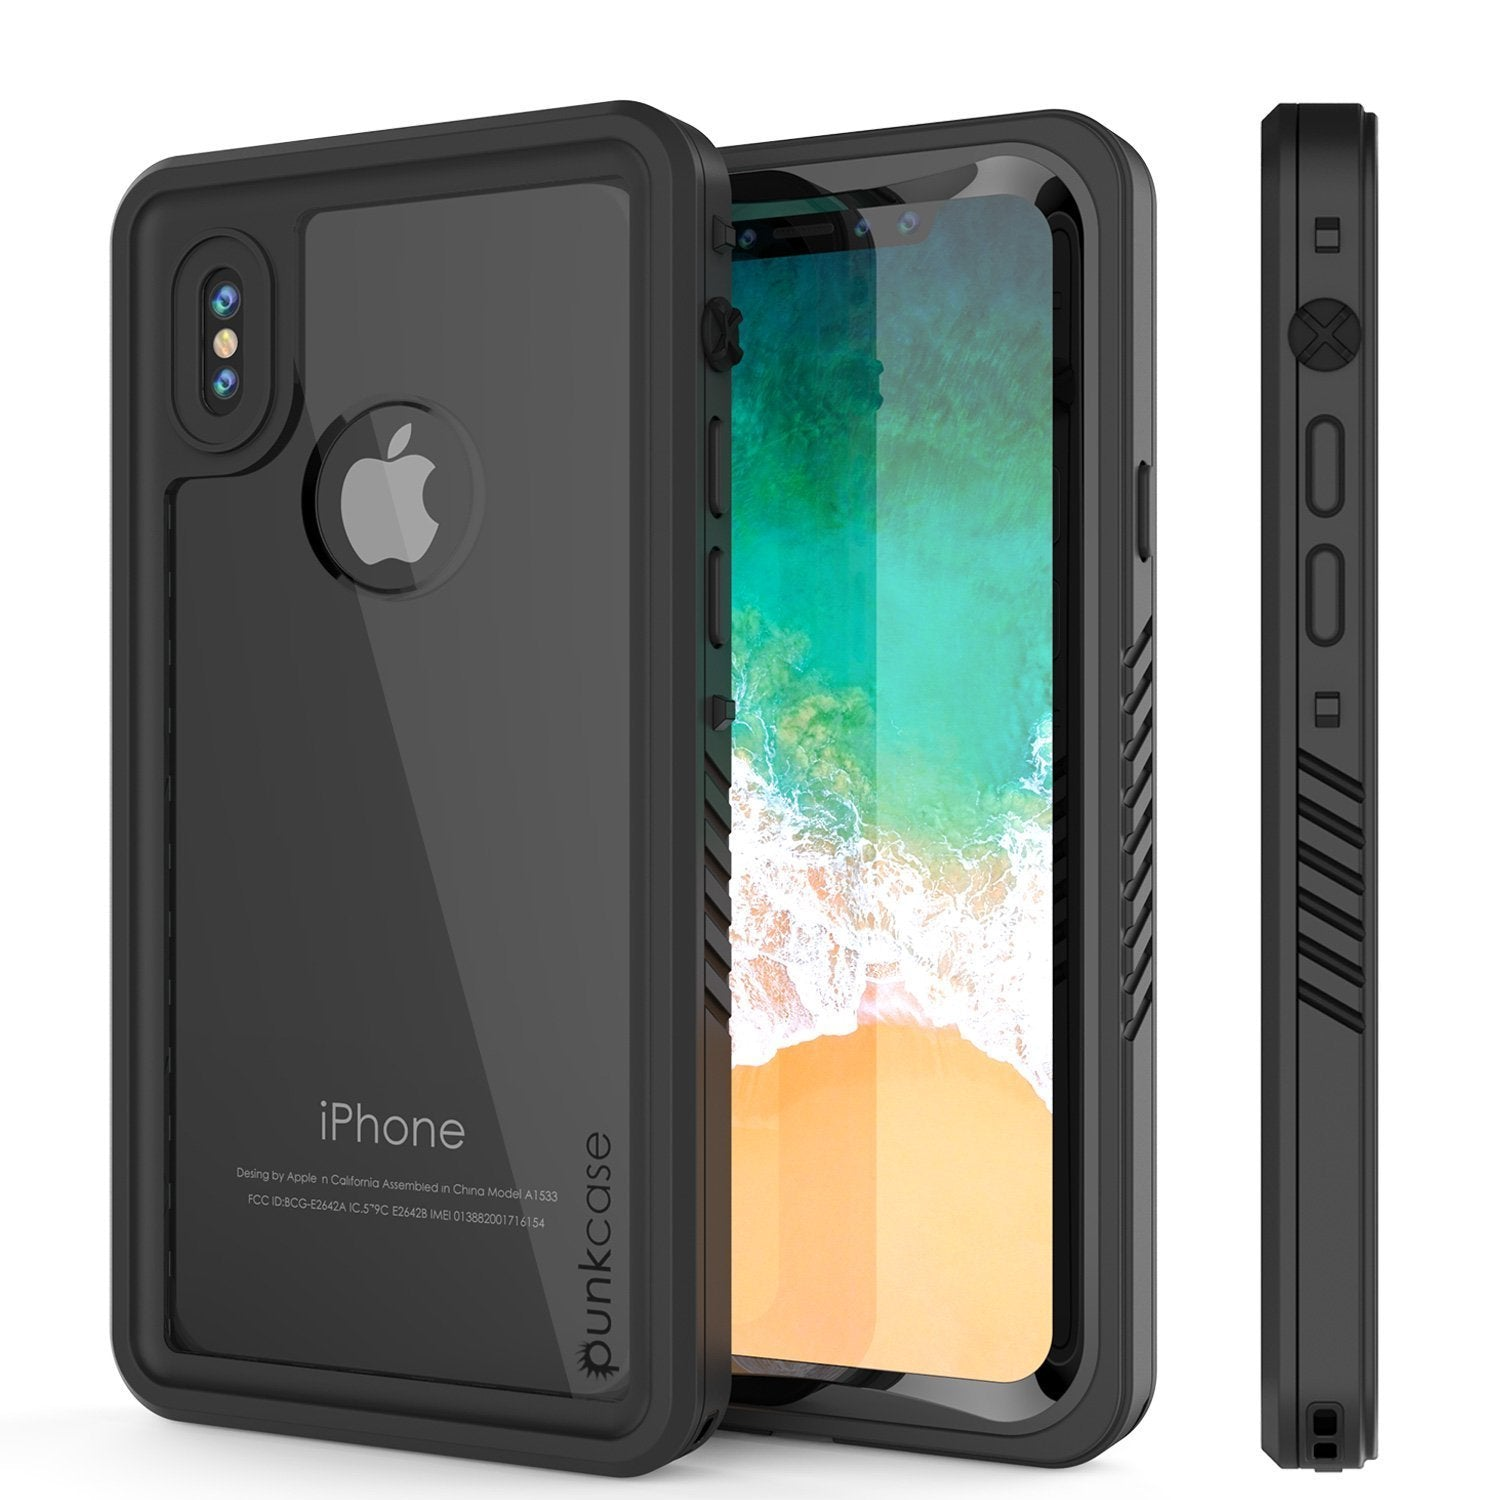 iPhone XS Max Waterproof Case, Punkcase [Extreme Series] Armor Cover W/ Built In Screen Protector [Black]